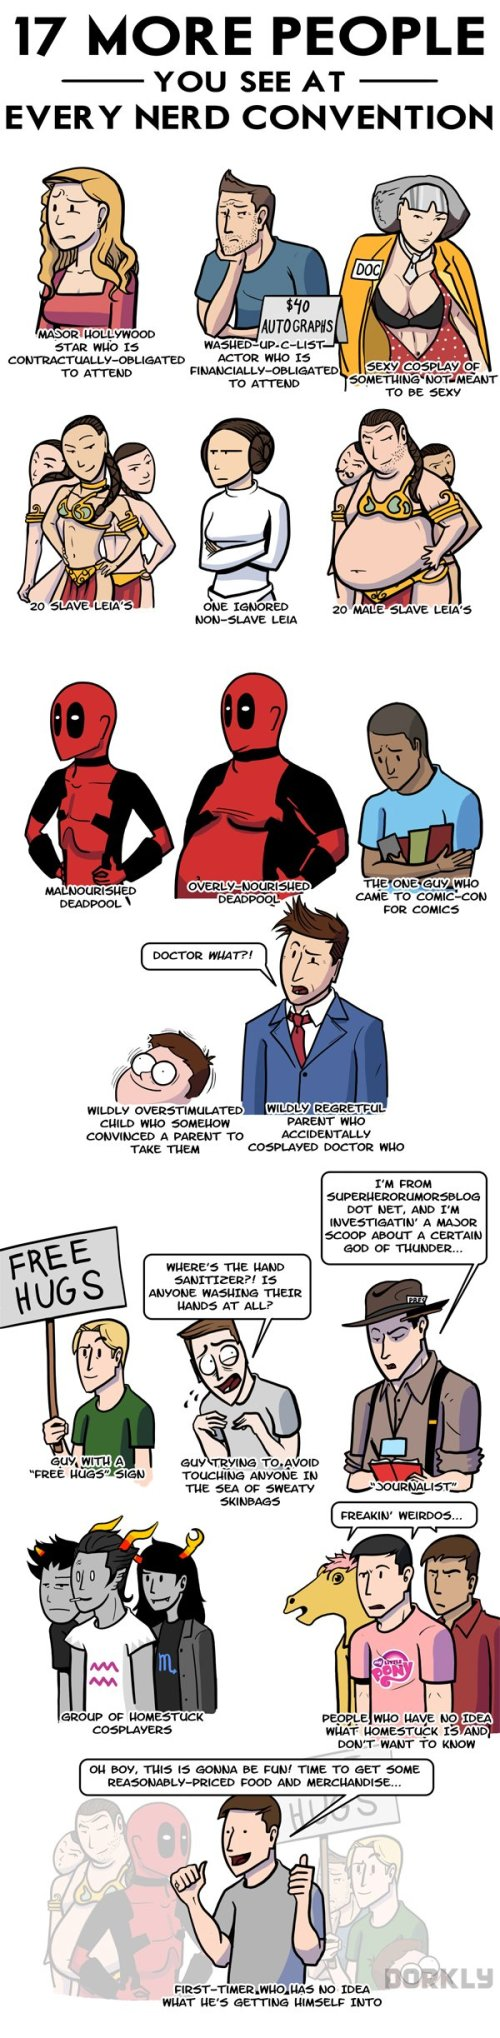 dorkly-17-people-you-see-at-every-nerd-convention